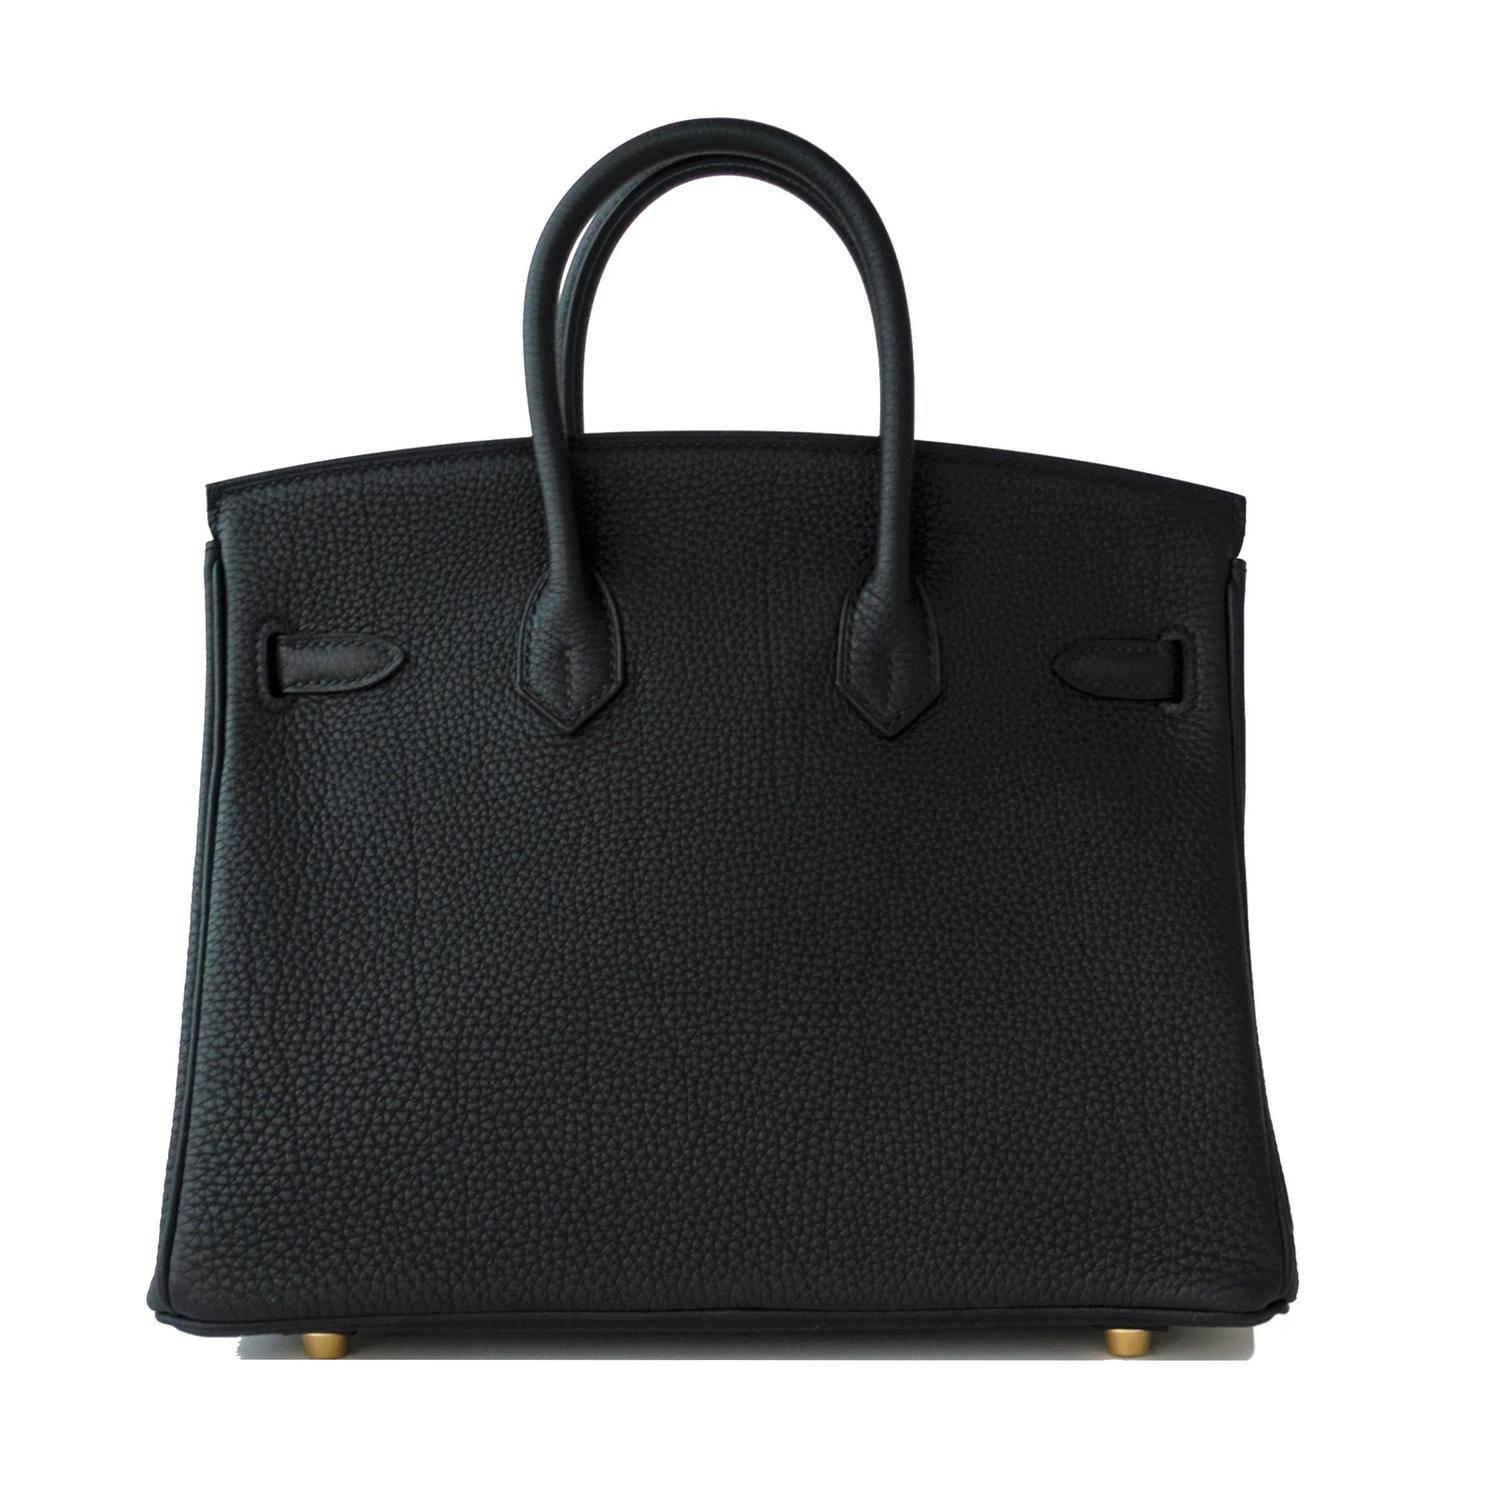 Hermes Black Baby Birkin 25cm Togo Gold GHW Satchel Jewel at 1stdibs